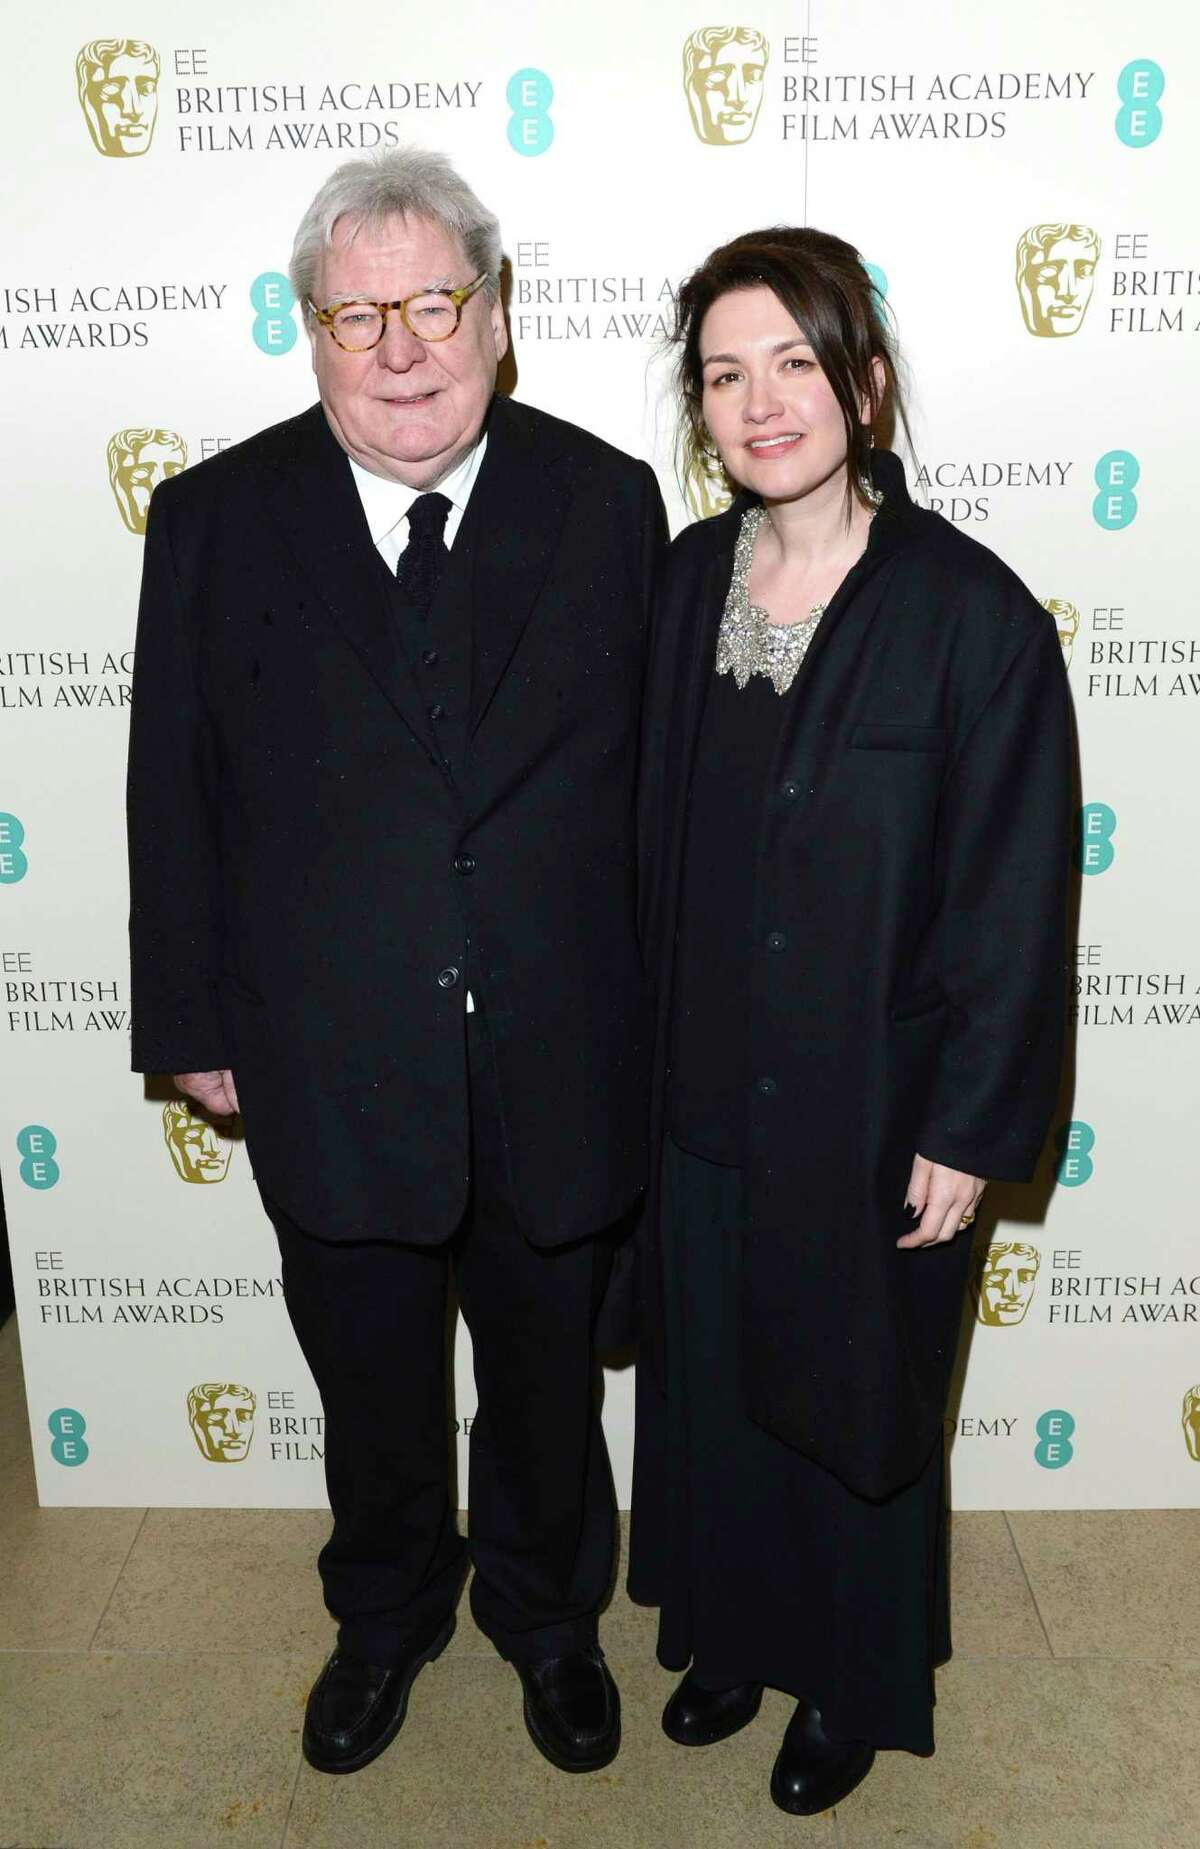 FILE - Director Alan Parker and his wife, Lisa arrive for the BAFTA Film Awards in London on Feb. 10, 2013. Parker, whose movies included a€œBugsy Malone,a€ a€œMidnight Expressa€ and a€œEvita,a€ has died at the age of 76. A statement from the directora€™s family says Parker died Friday in London after a long illness. (Photo by Jon Furniss/Invision/AP, File)